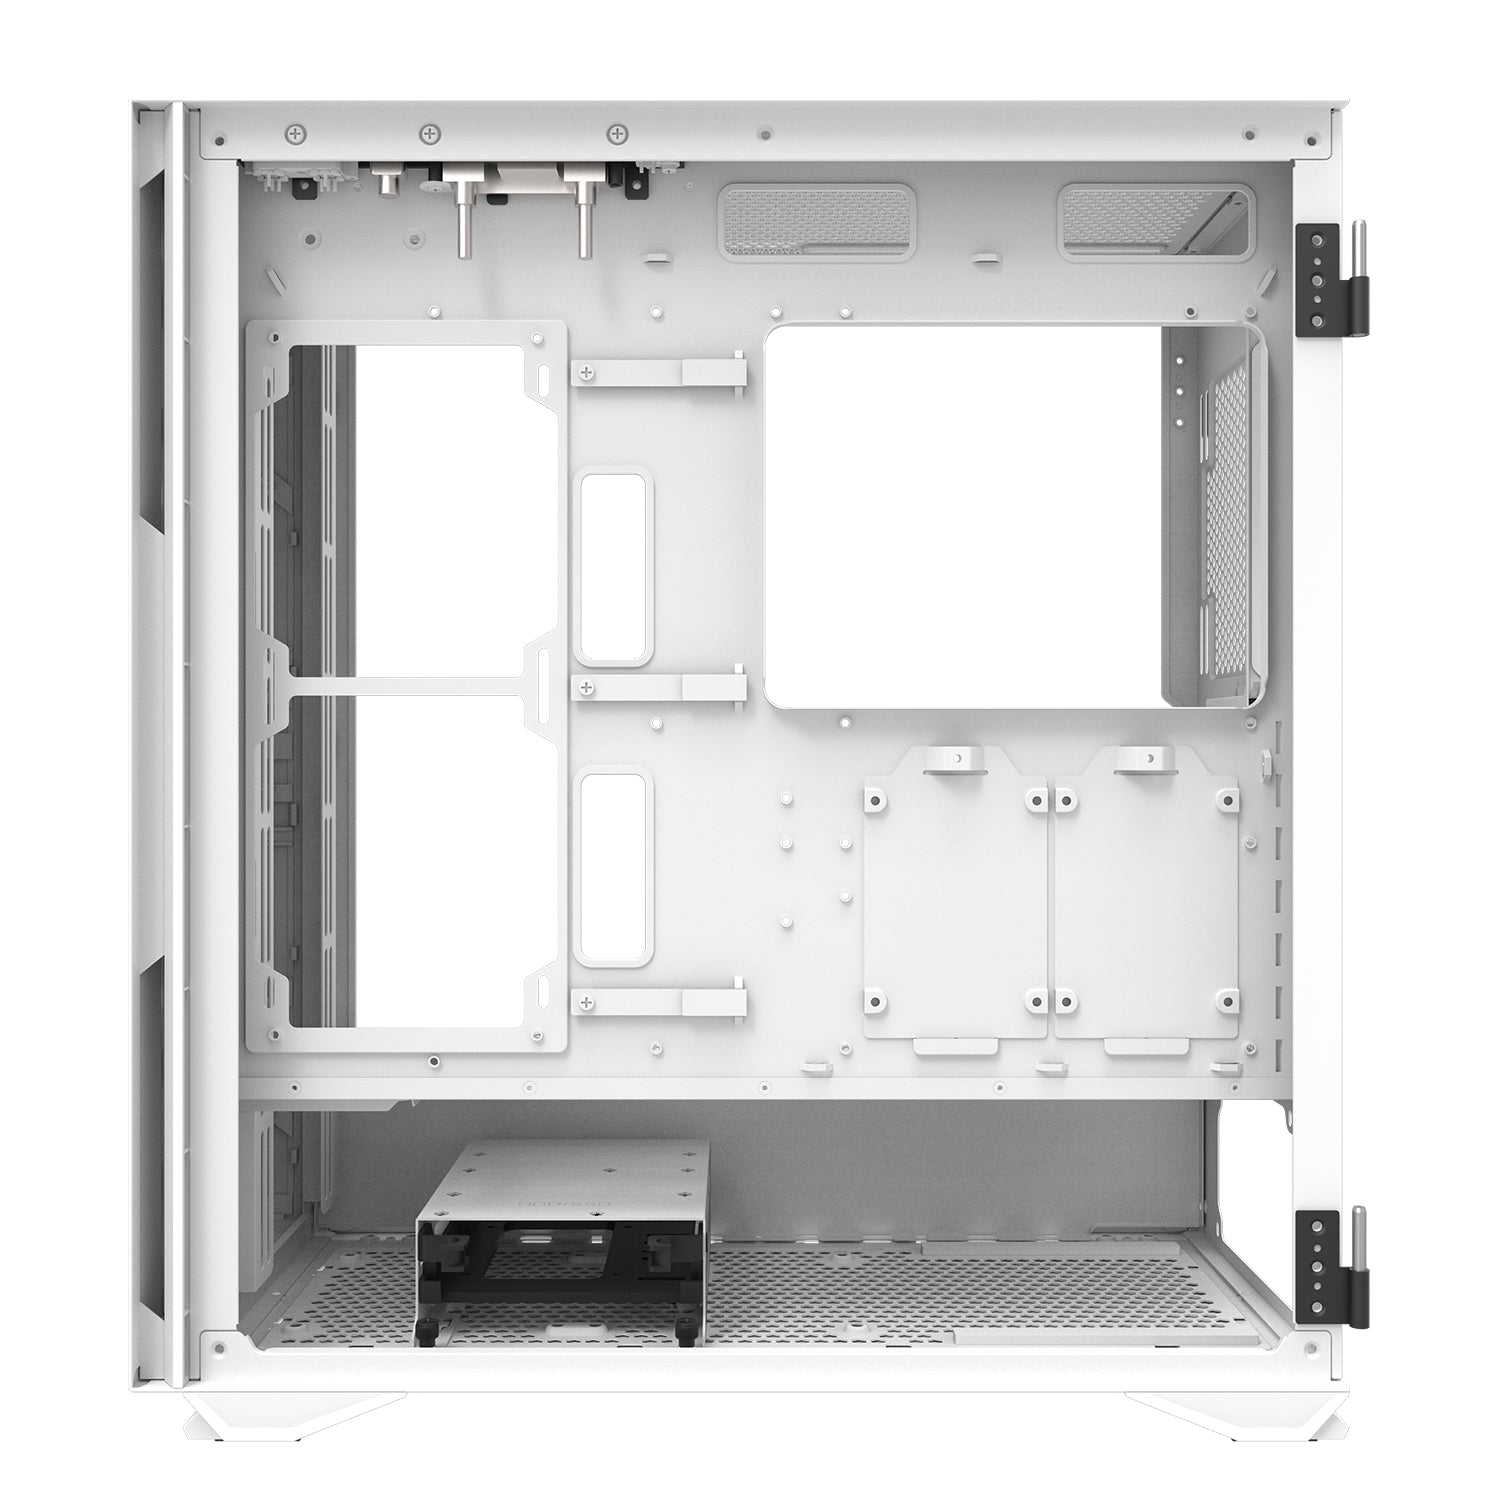 darkFlash DLX22 White ATX Computer Case with Graphics card holder & Mesh Front Panel